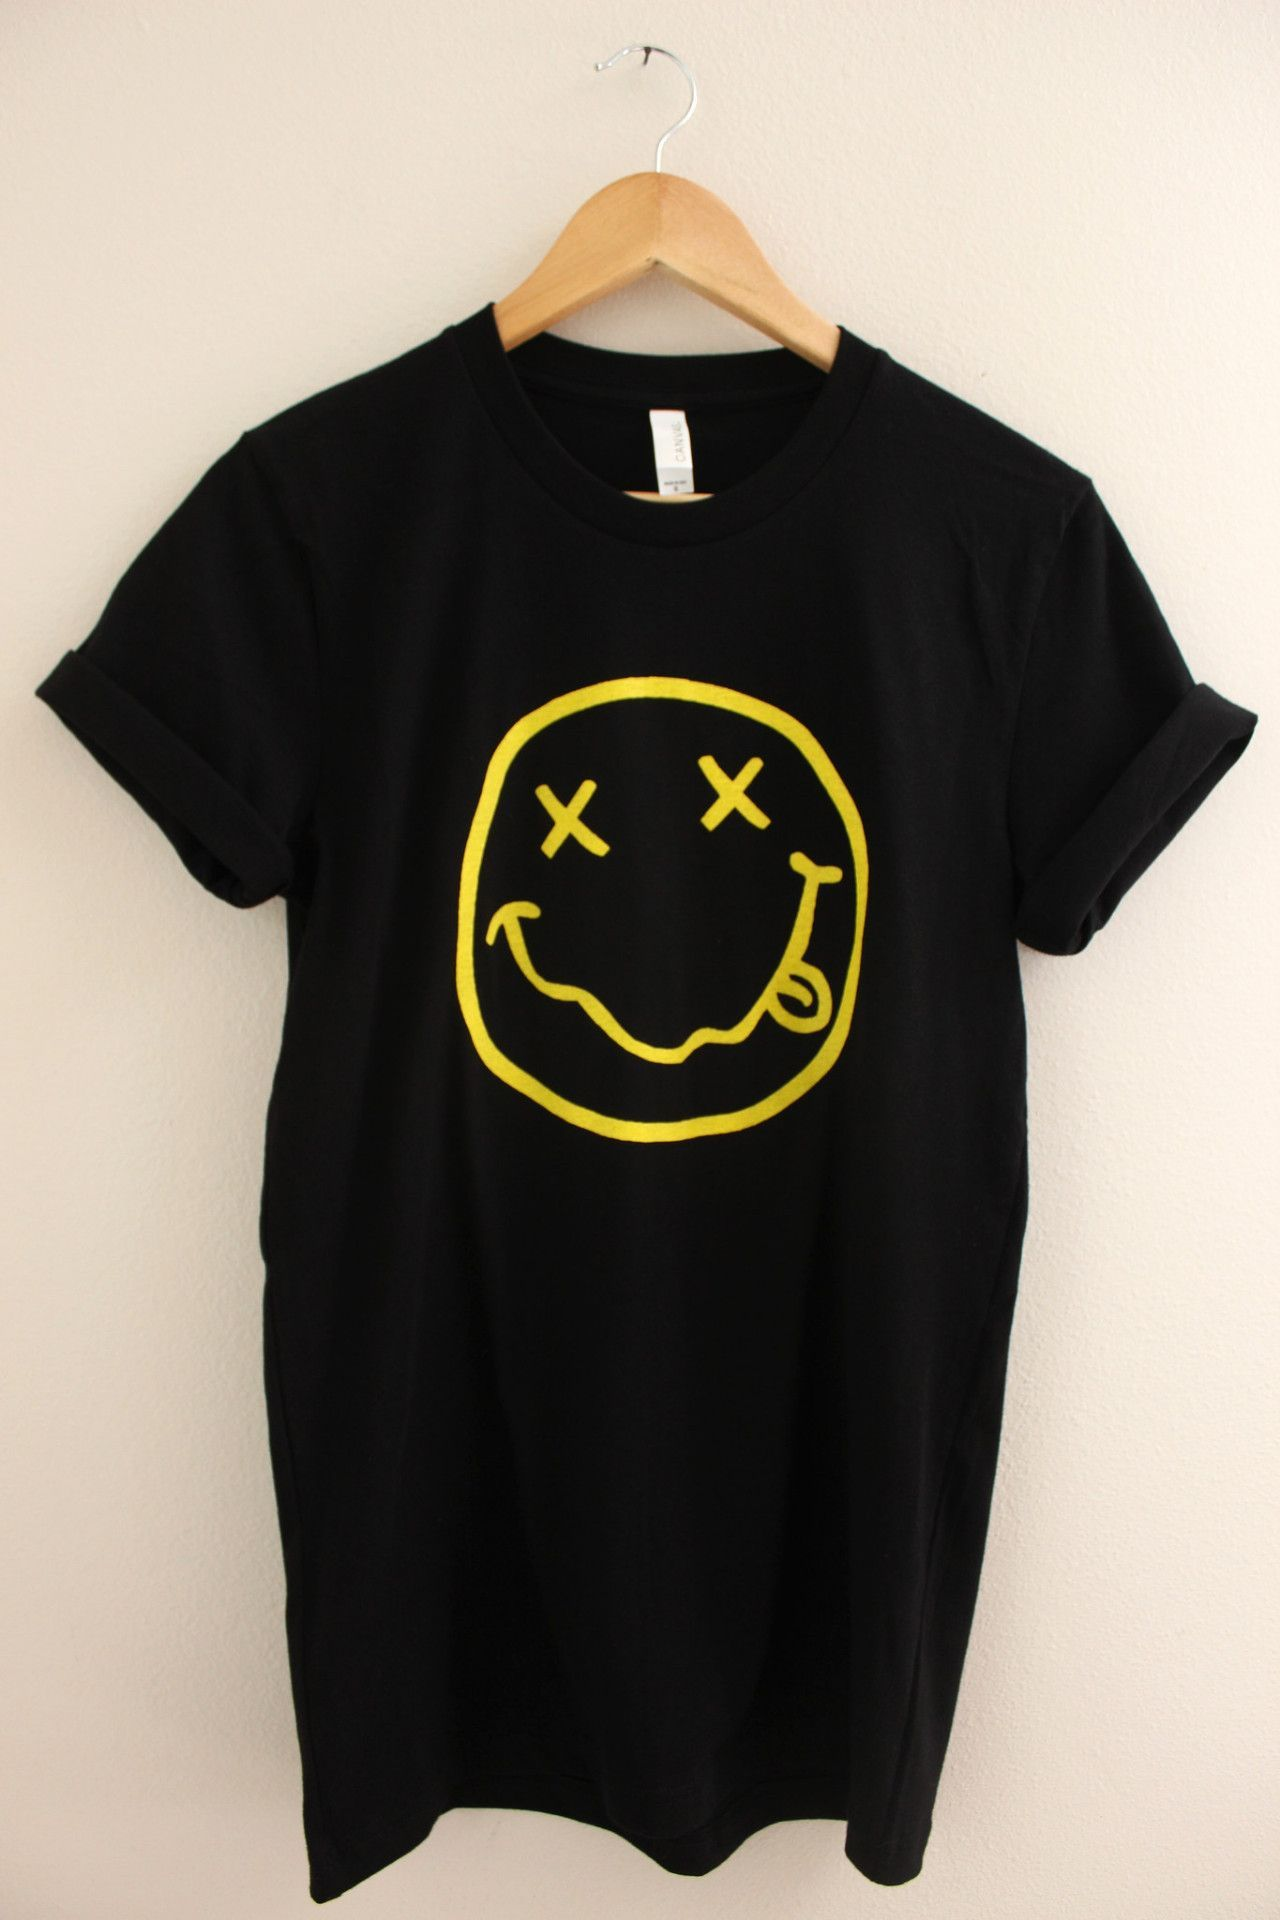 Black t shirt with design - Nirvana Smiley Face Black Graphic Unisex Tee